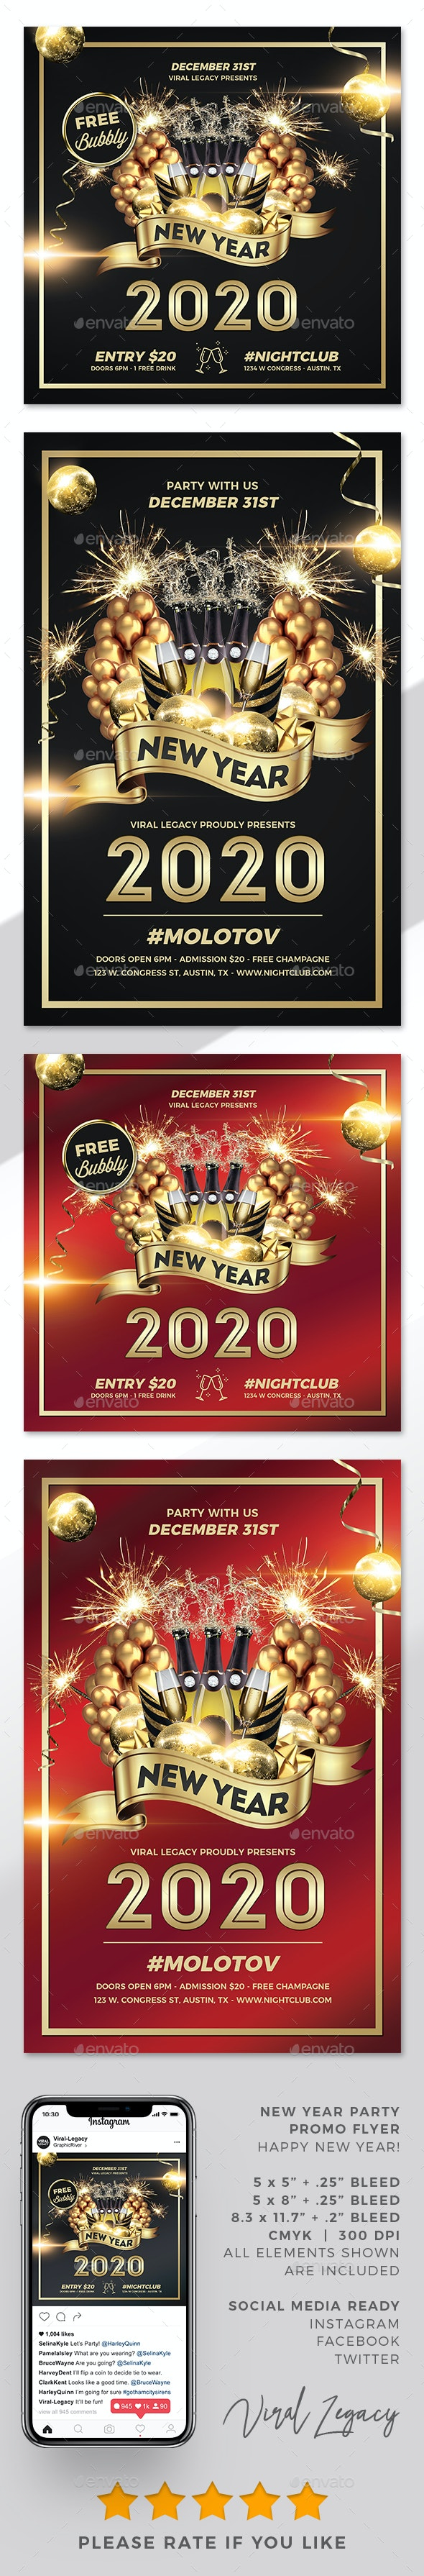 New Year Party Poster / Flyer V20 - Events Flyers